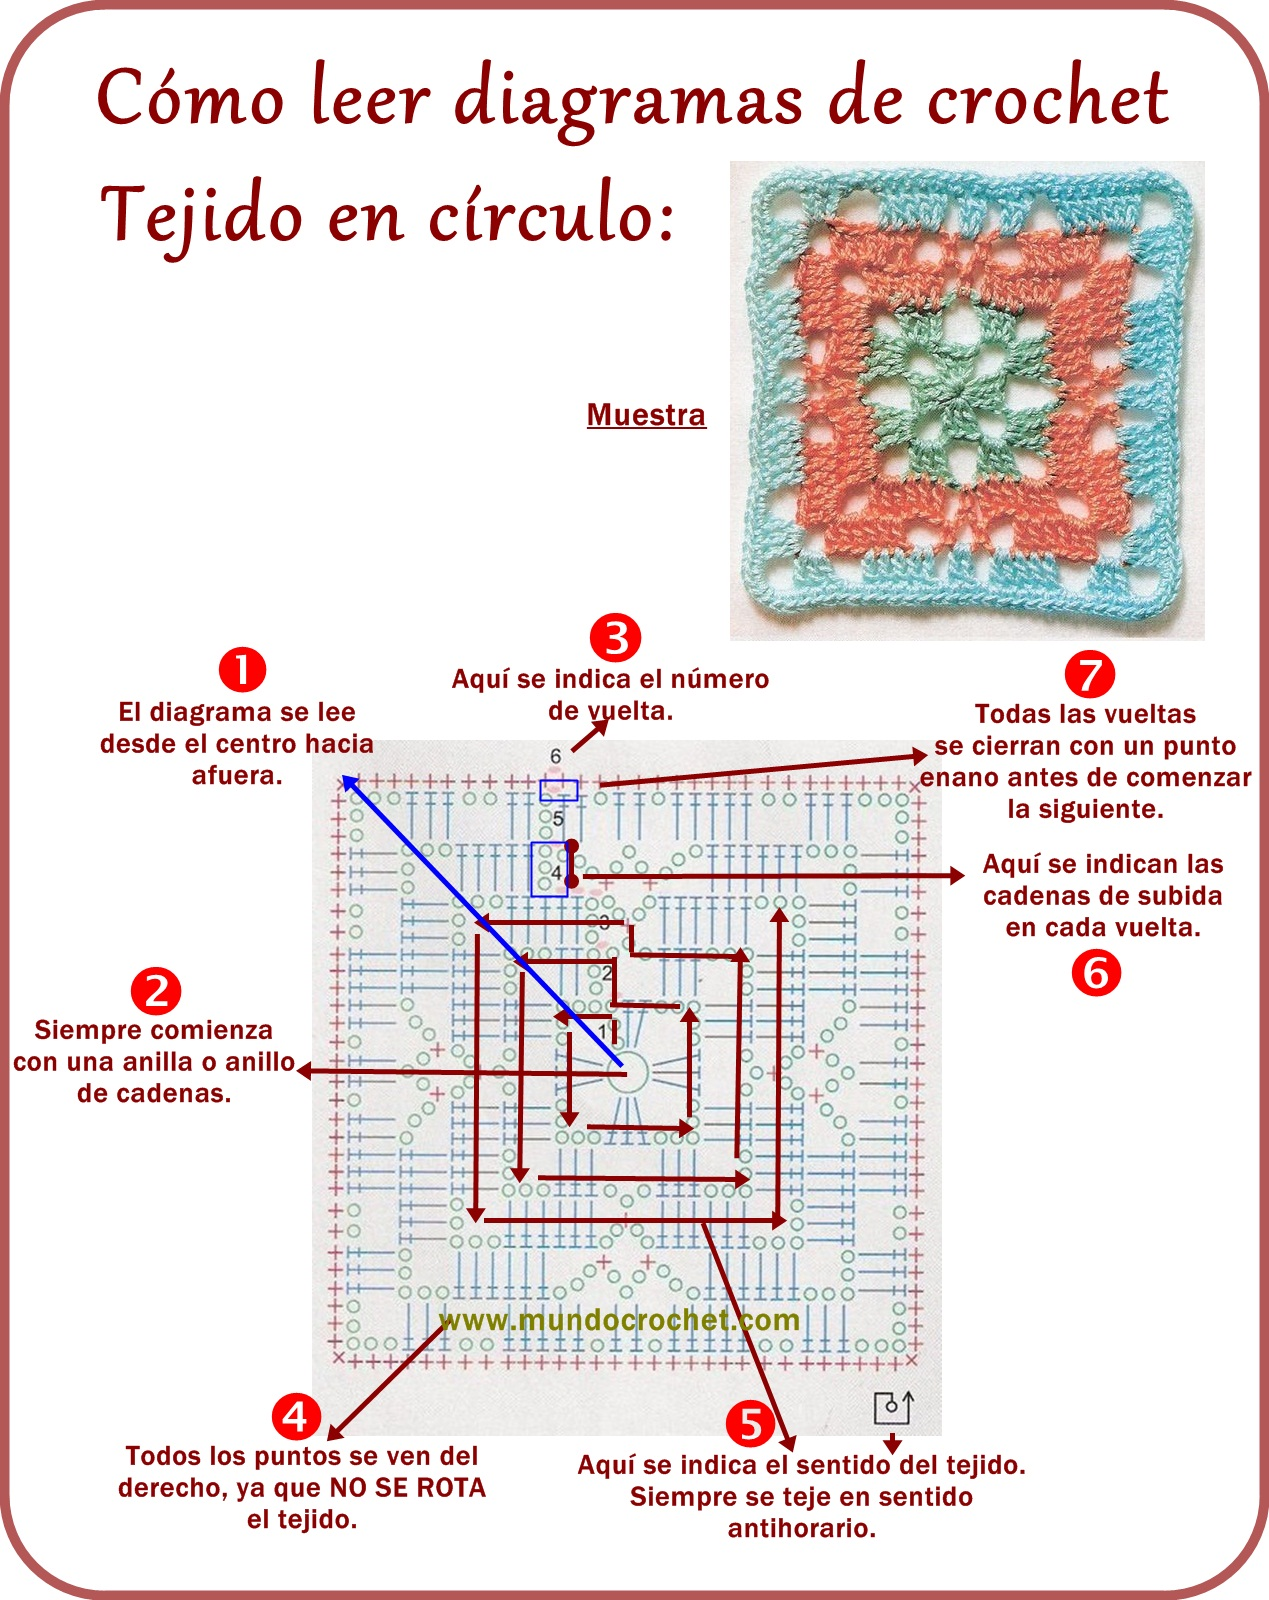 Leer diagramas crochet - Reading crochet diagrams - крючком ...